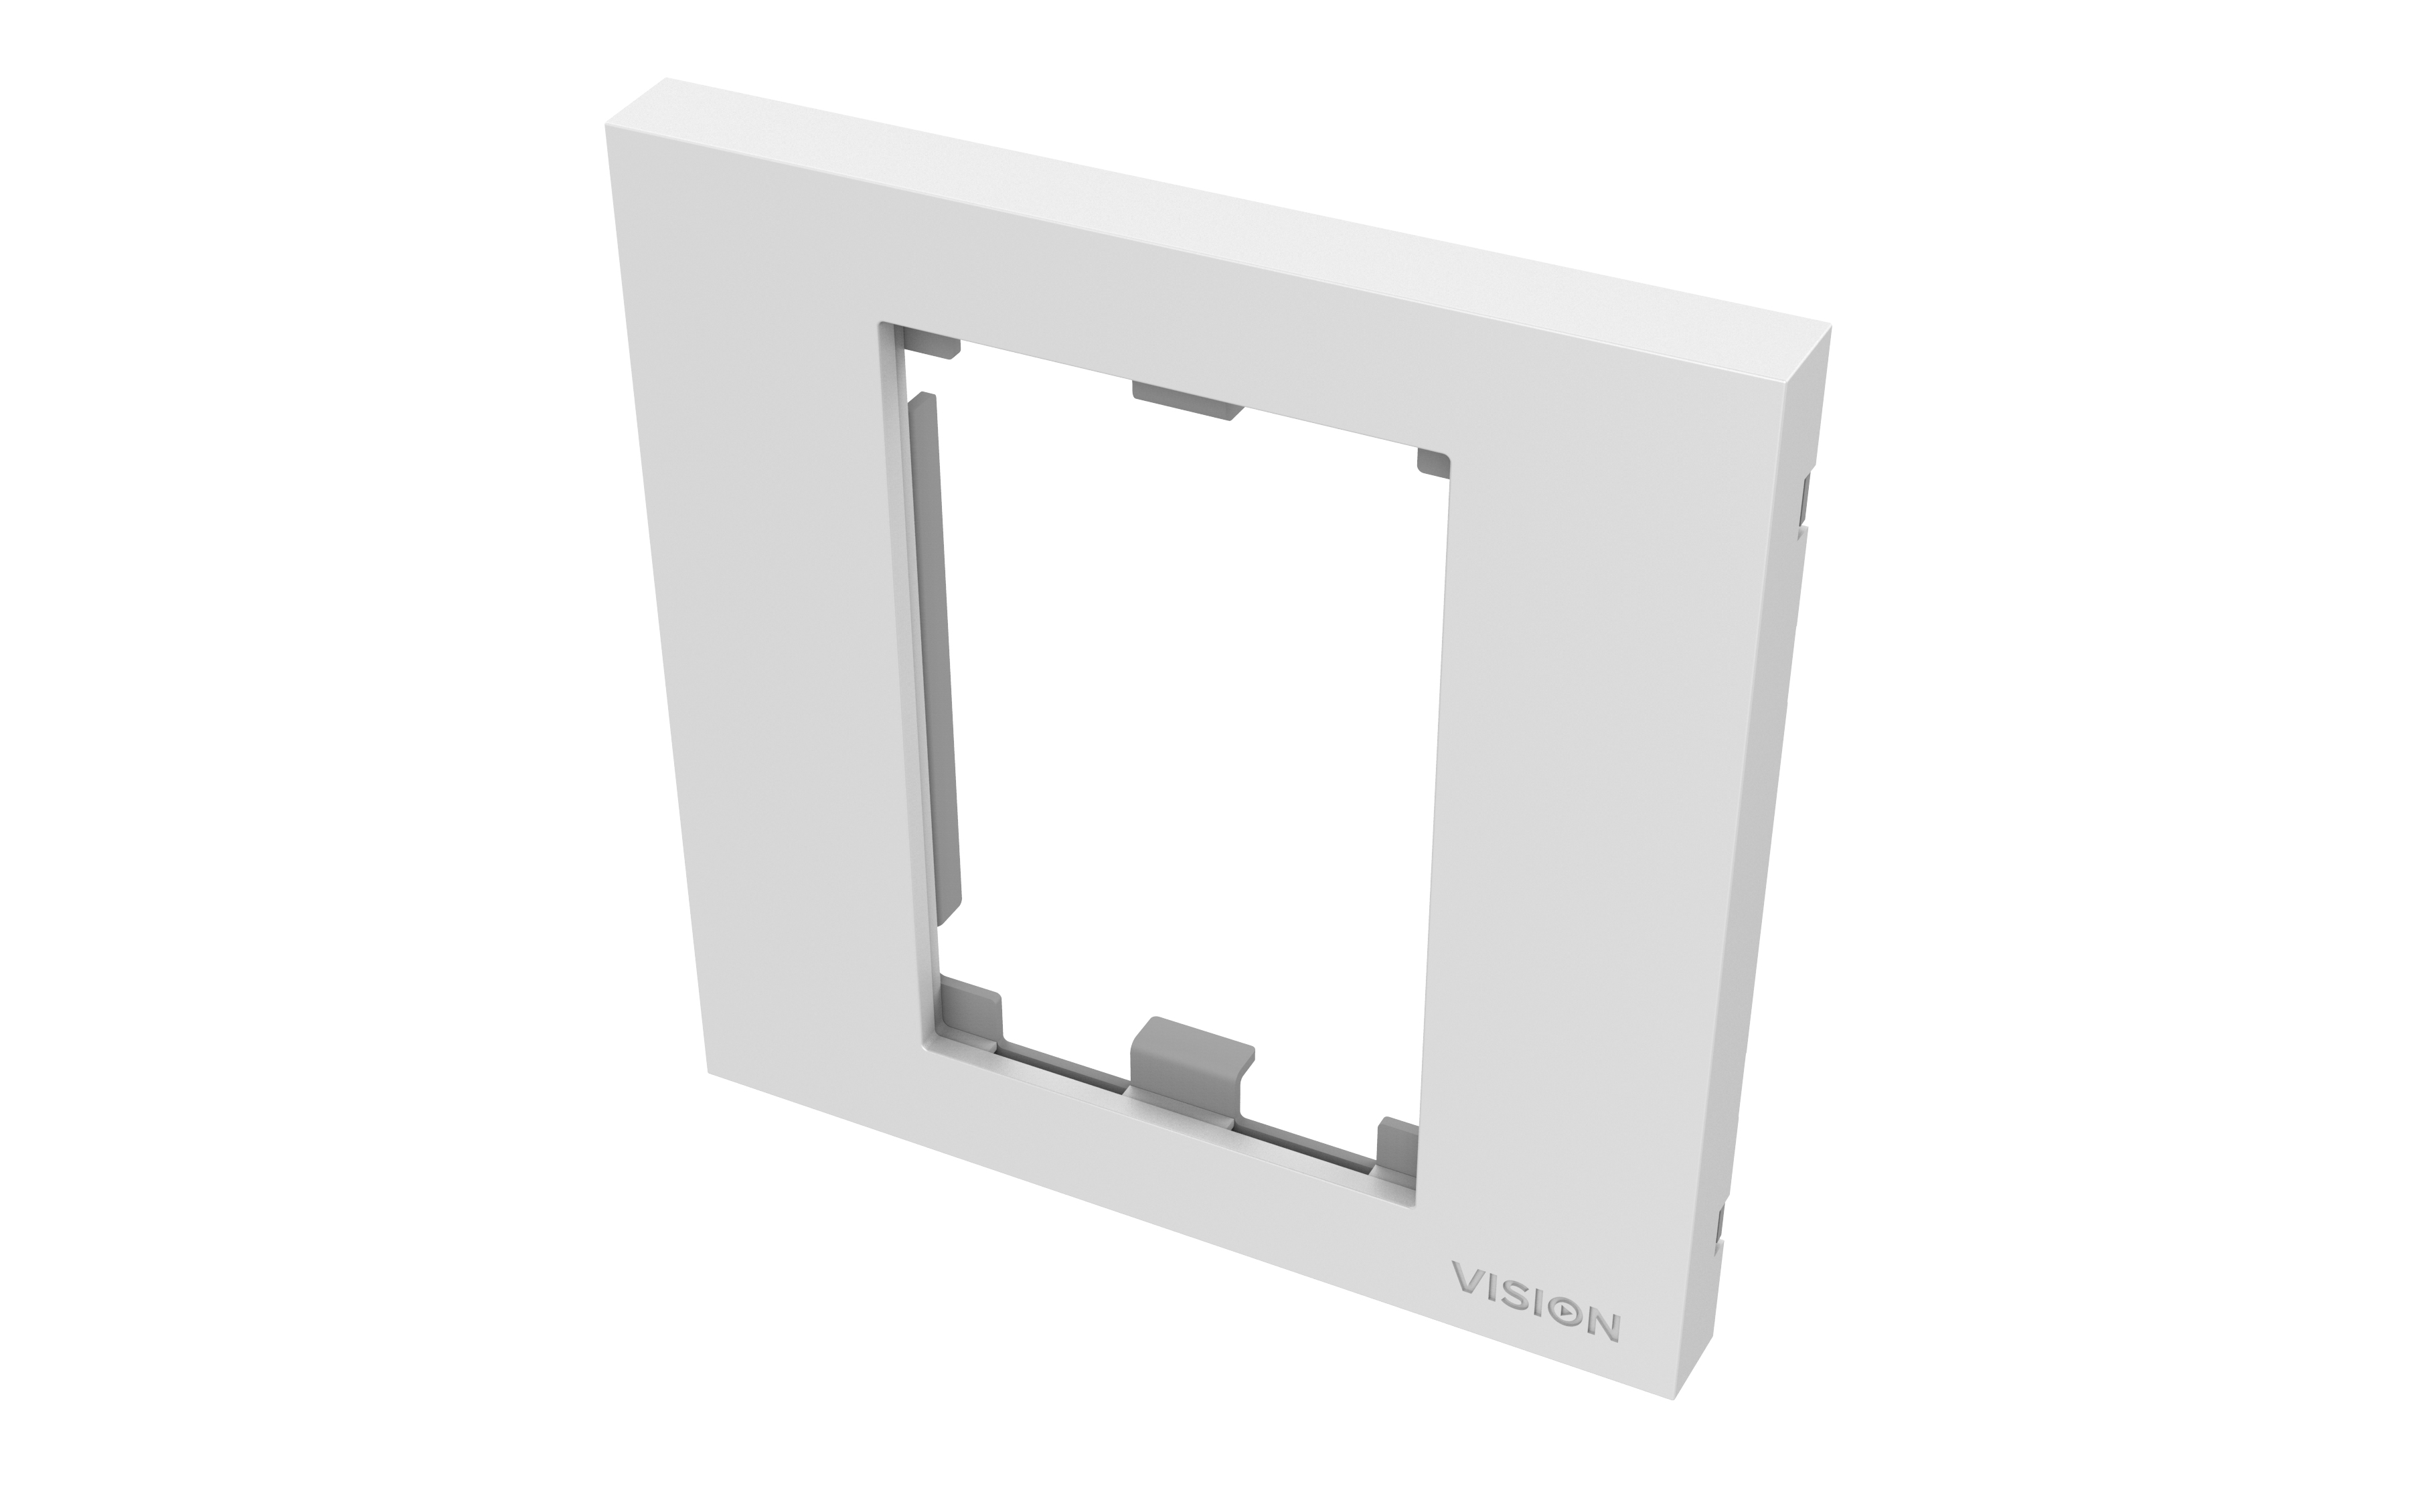 Vision TECHCONNECT V3 SINGLE-GANG UK SURROUNDWHITE Single-gang frame which accommodates two modules. Fits t